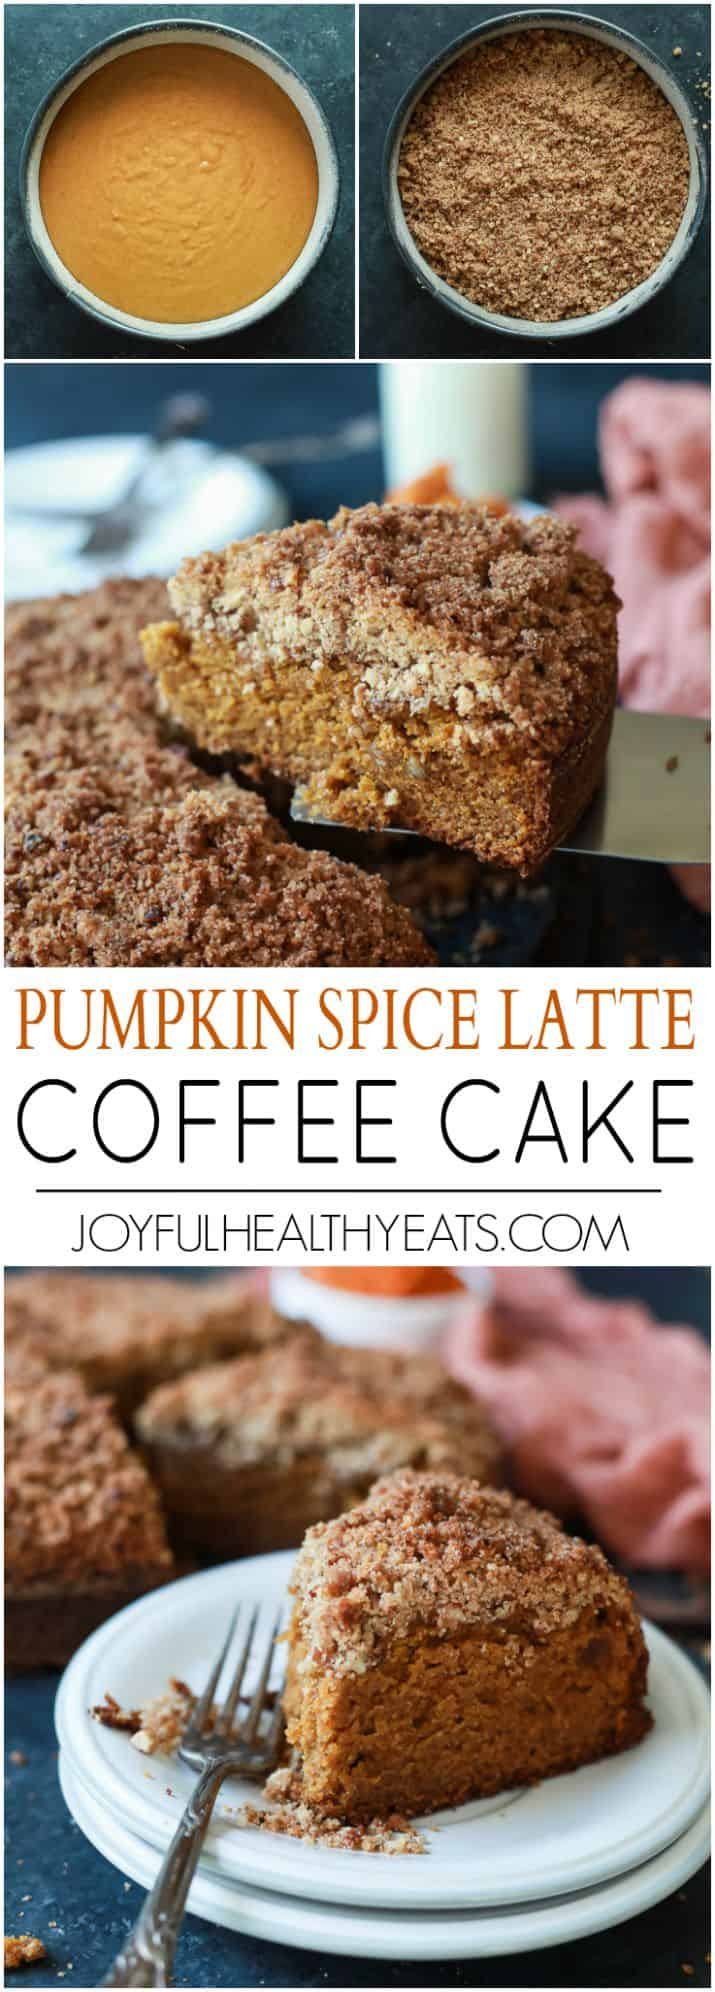 A family recipe that you need in your arsenal this fall! Pumpkin Spice Latte Coffee Cake, moist, loaded with pumpkin spice flavor with a touch of espresso for the best bite. Starbucks has nothing on this cake!   joyfulhealthyeats.com #recipe #fall